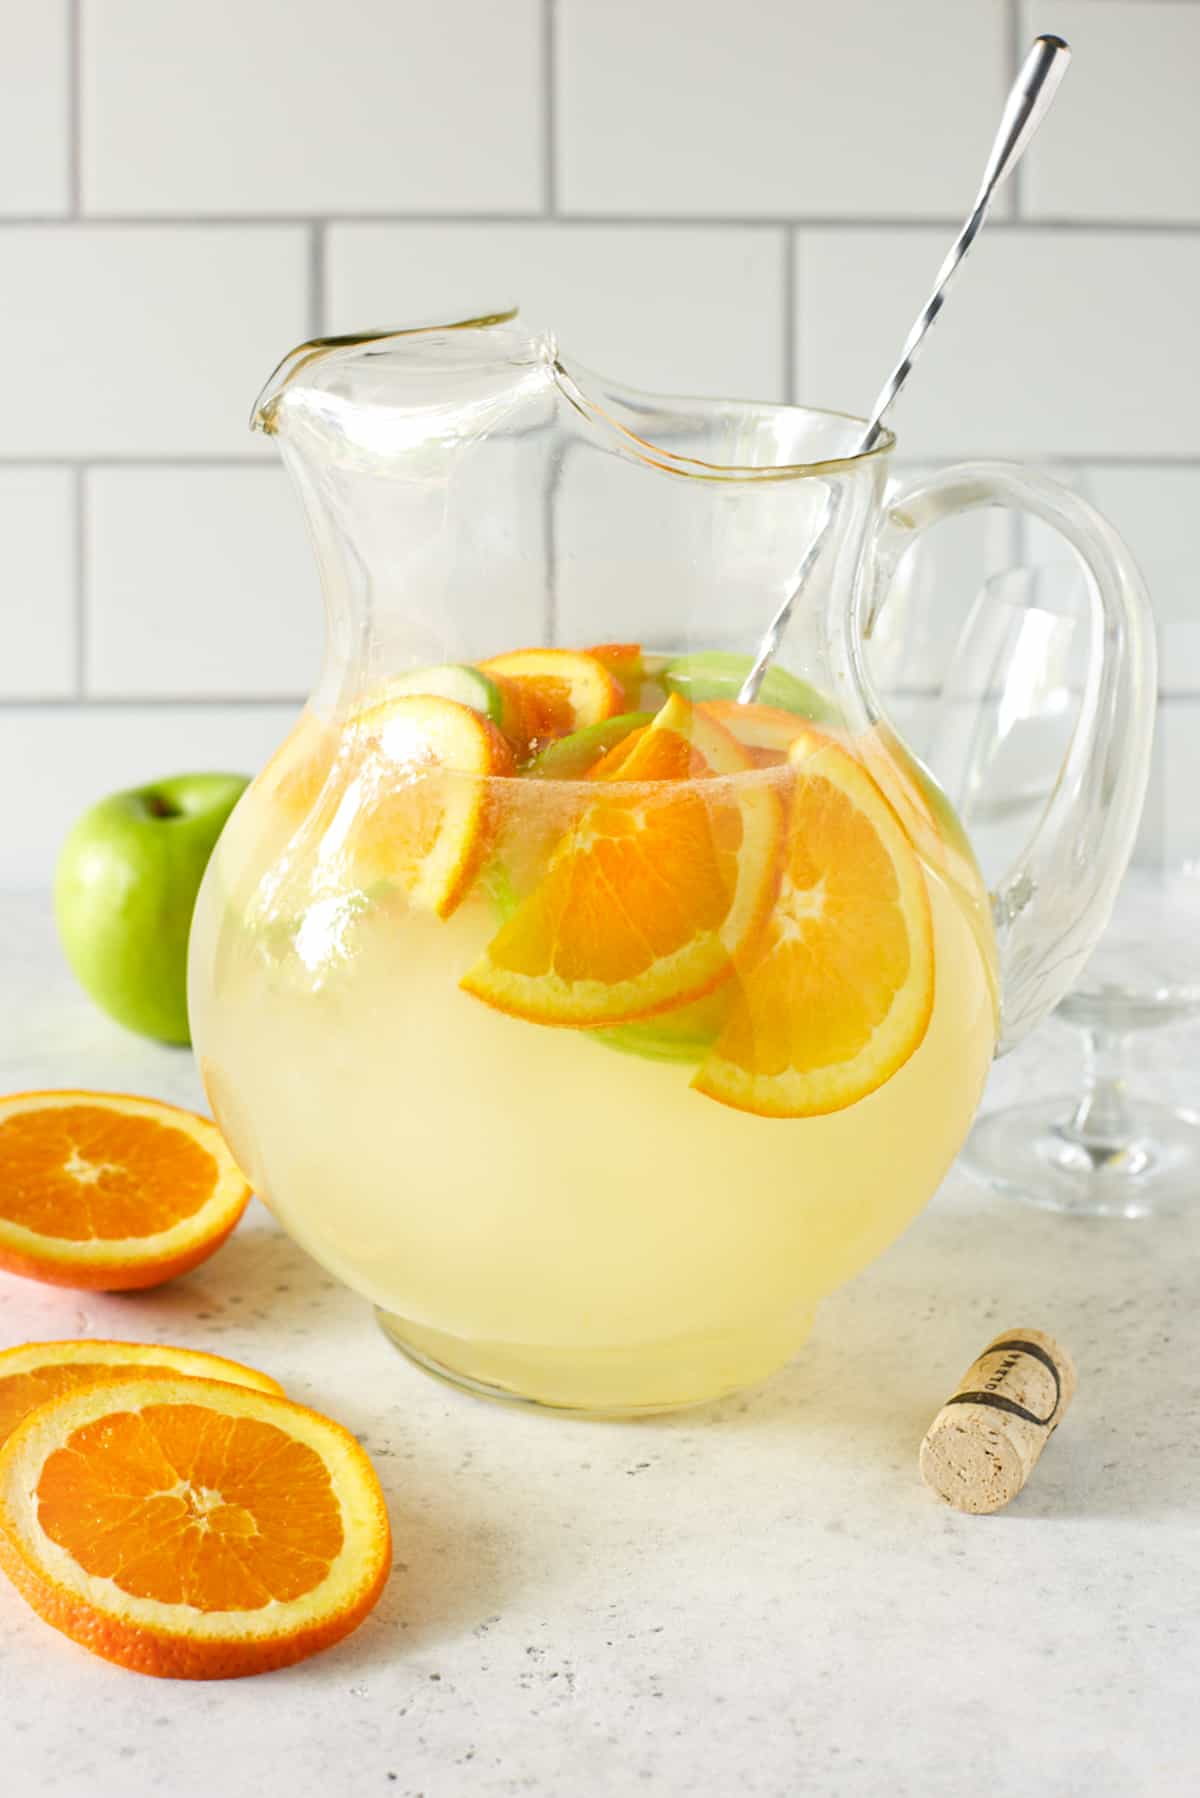 pitcher filled with lemonade and fresh fruit slices.